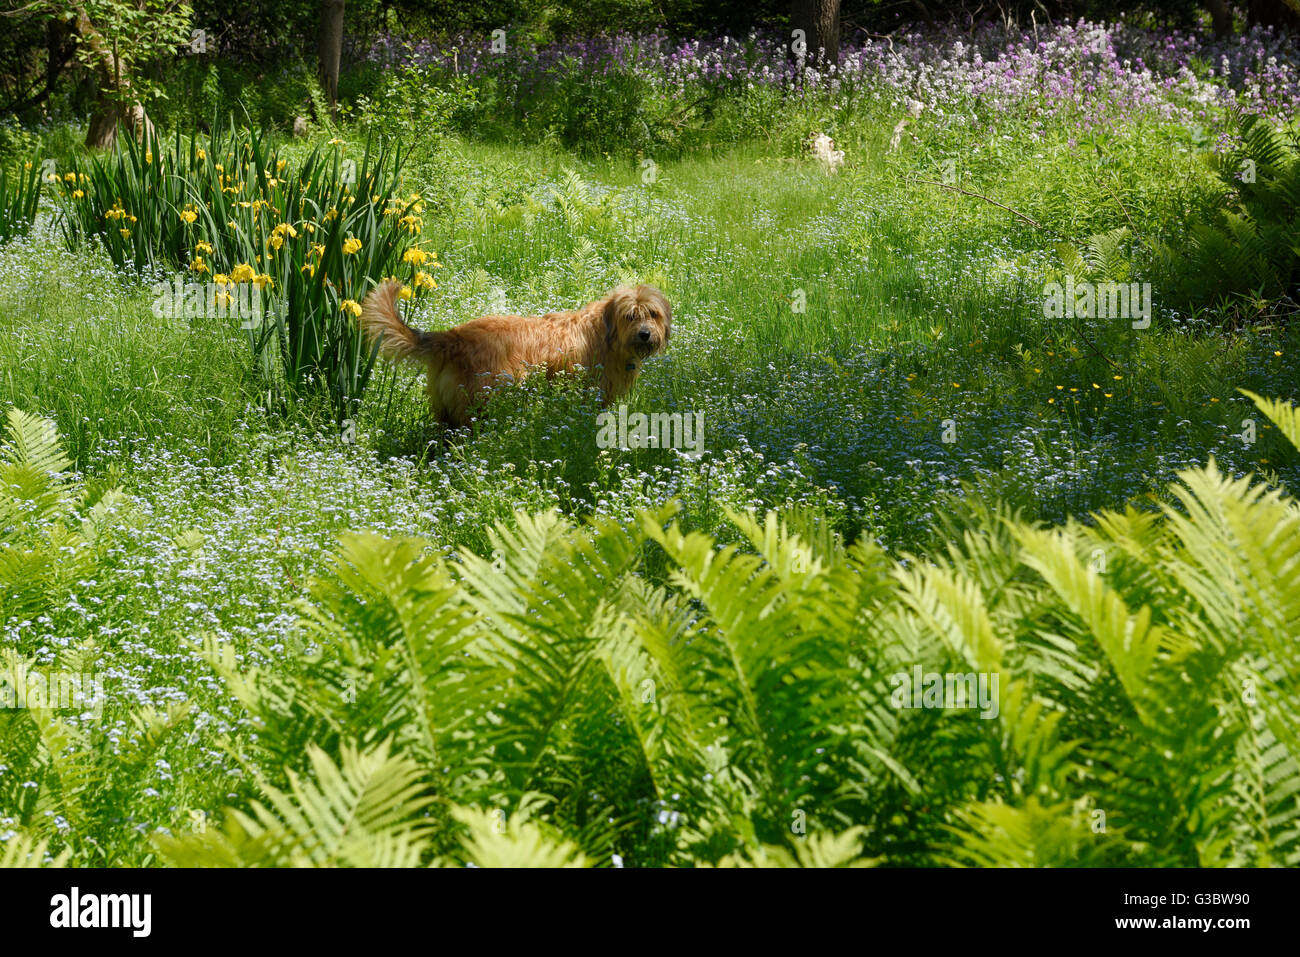 Dog in field of forget me not flowers ostrich fern yellow flag iris dog in field of forget me not flowers ostrich fern yellow flag iris and dames rocket izmirmasajfo Images